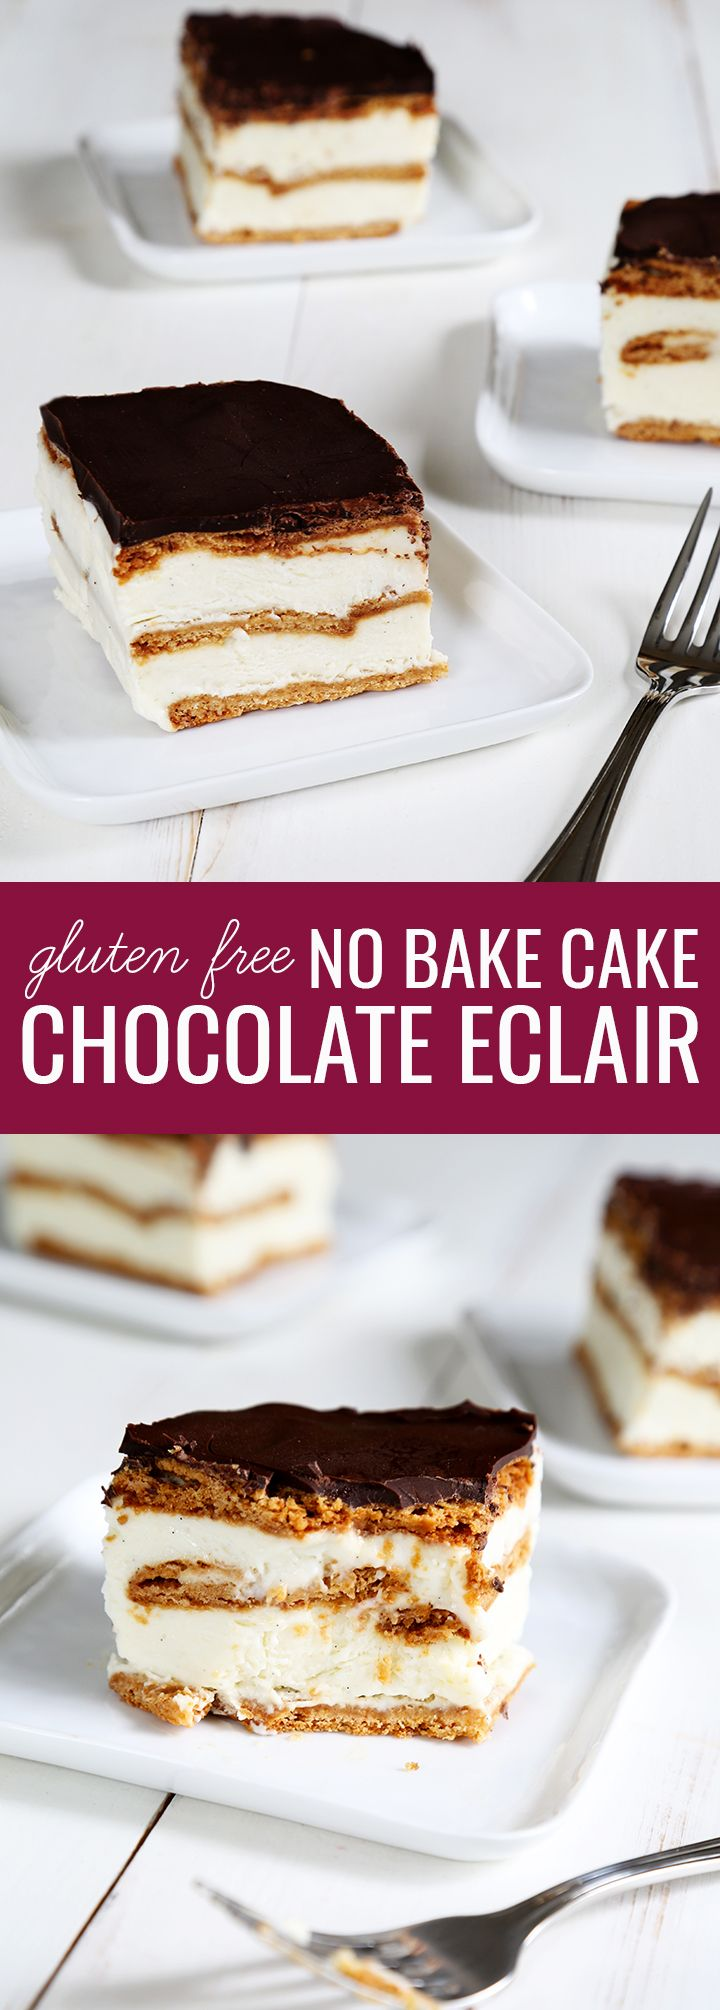 Get this tested, easy-to-follow recipe for no bake gluten free chocolate eclair cake. Perfect for summer gatherings!